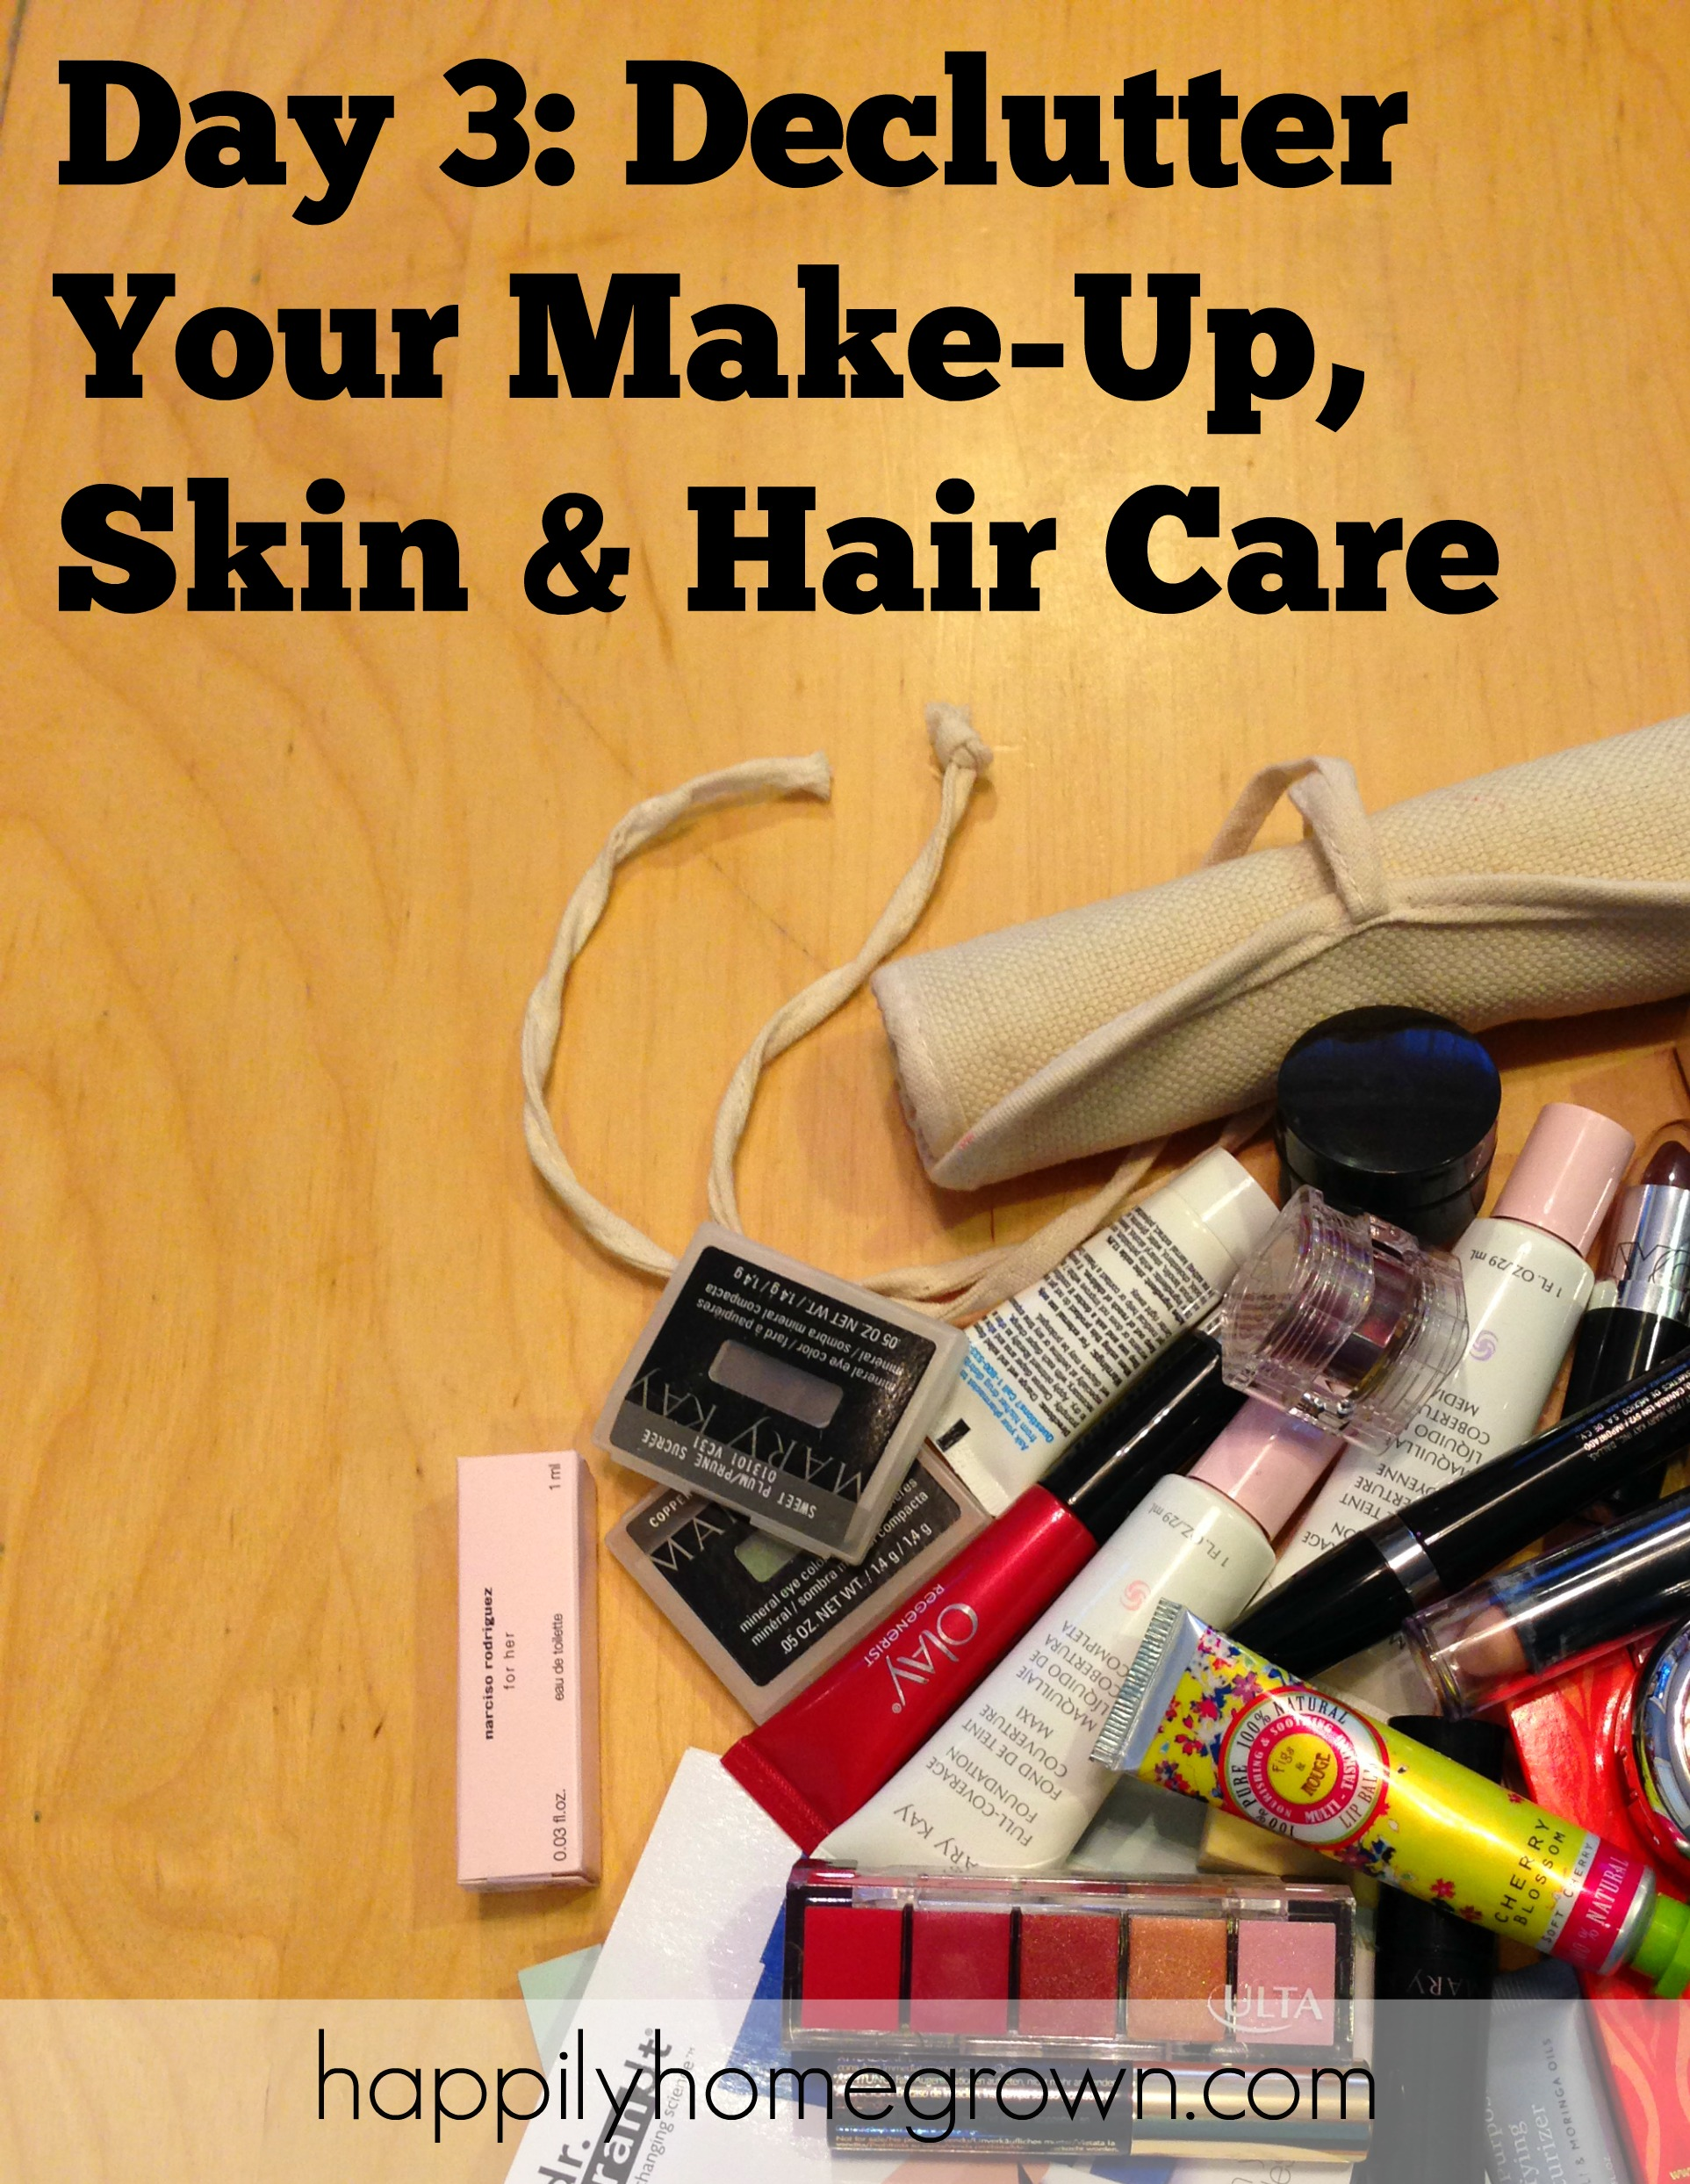 Day 3 Declutter Your Make-Up, Skin & Hair Care